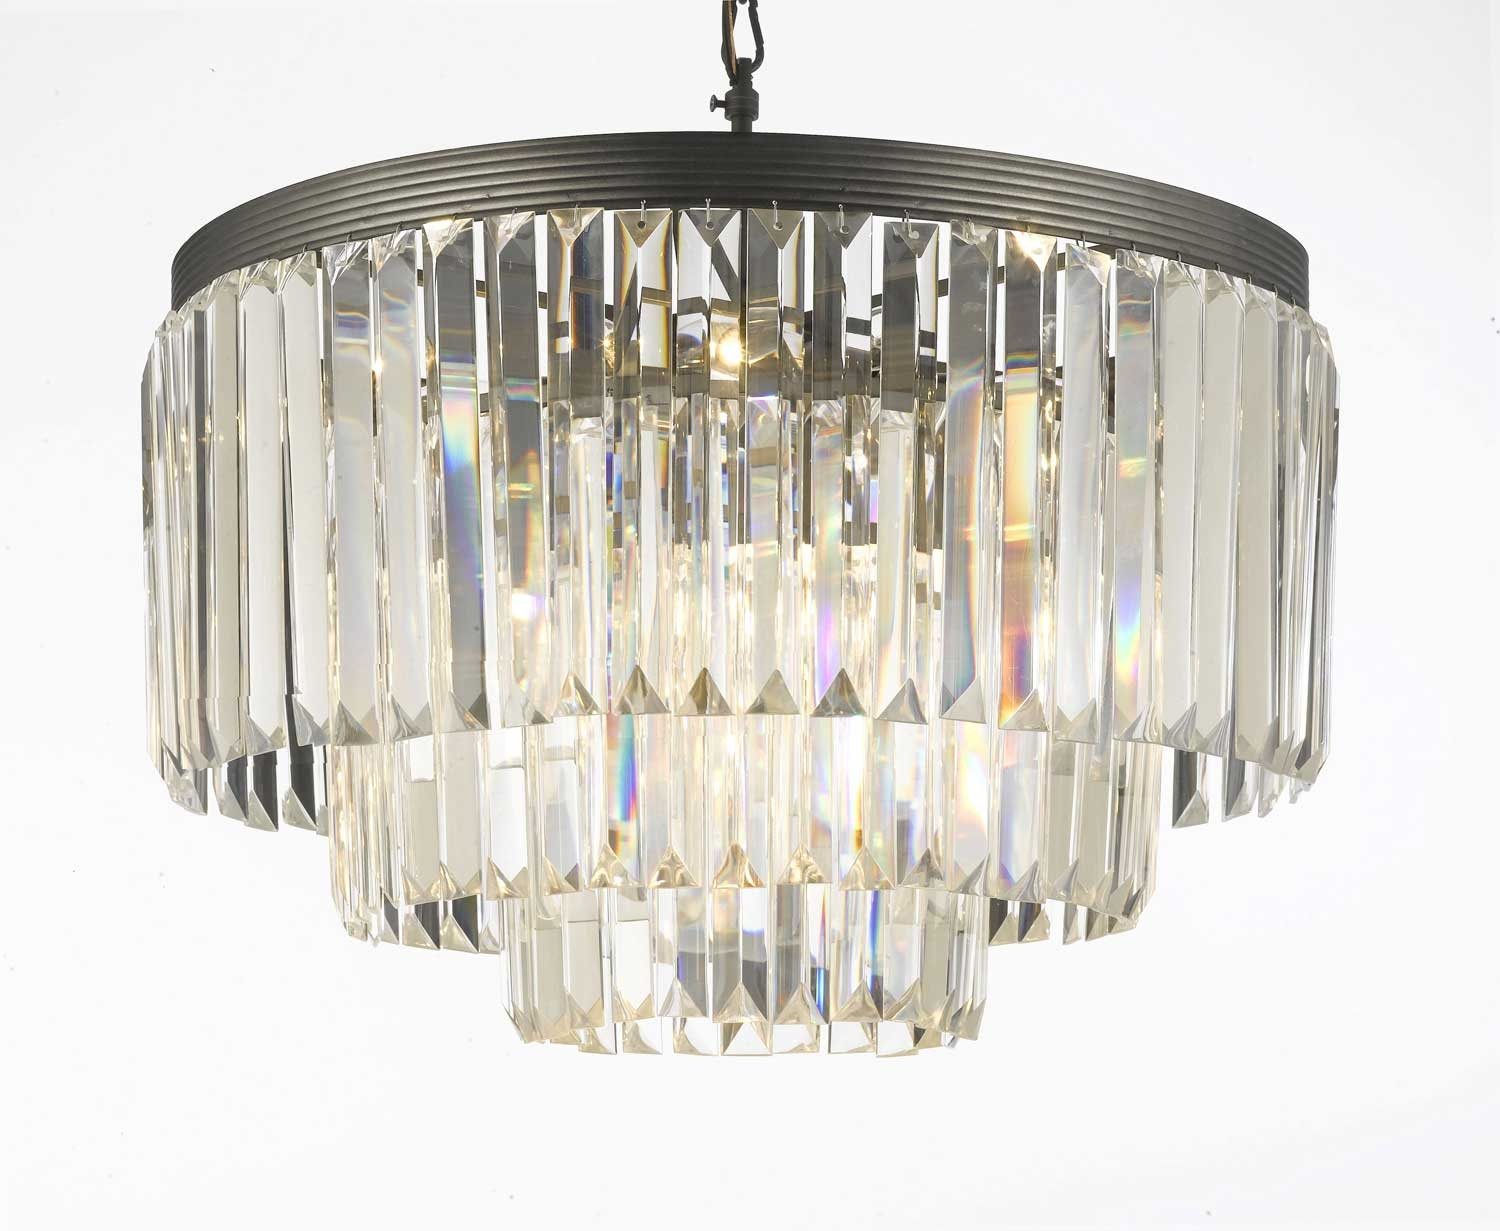 G7 11009 Gallery Chandeliers Retro Odeon Crystal Glass Fringe 3 Within 3 Tier Crystal Chandelier (#7 of 12)